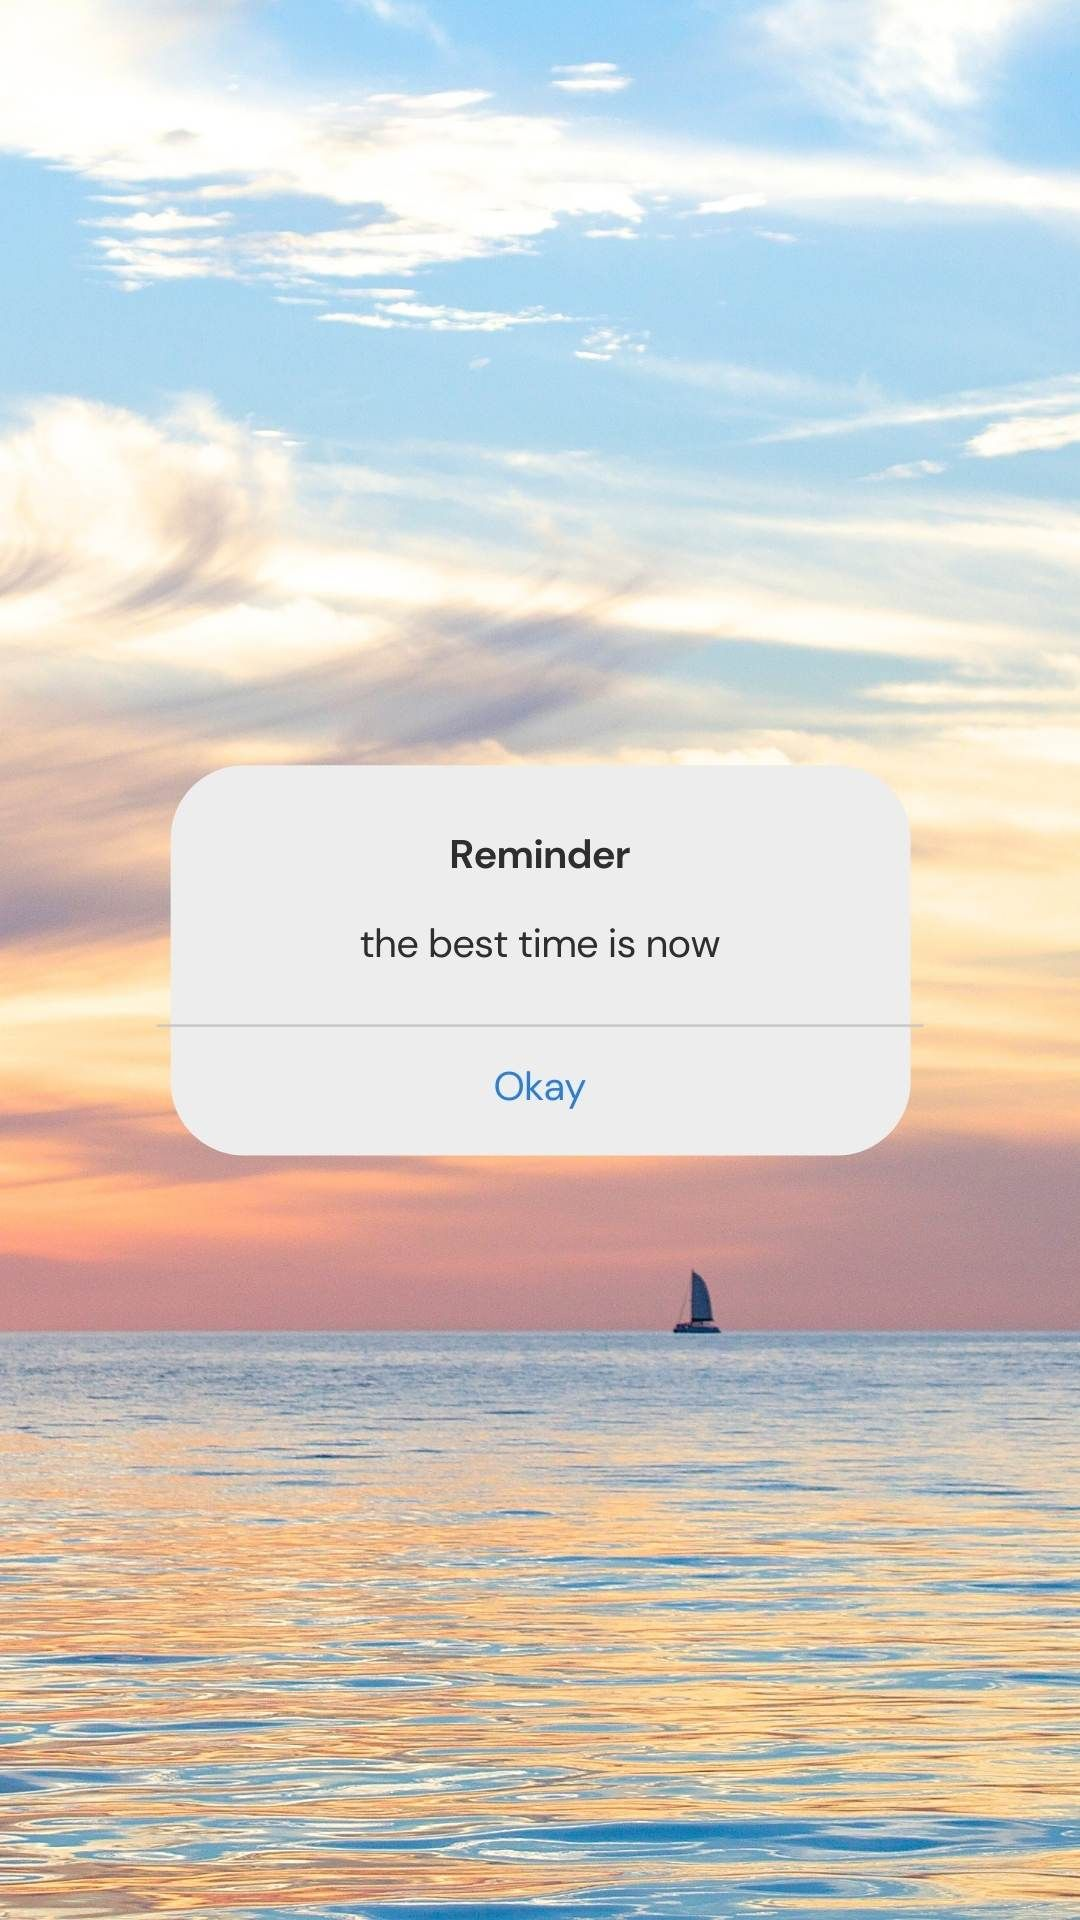 Reminder: the best time is now